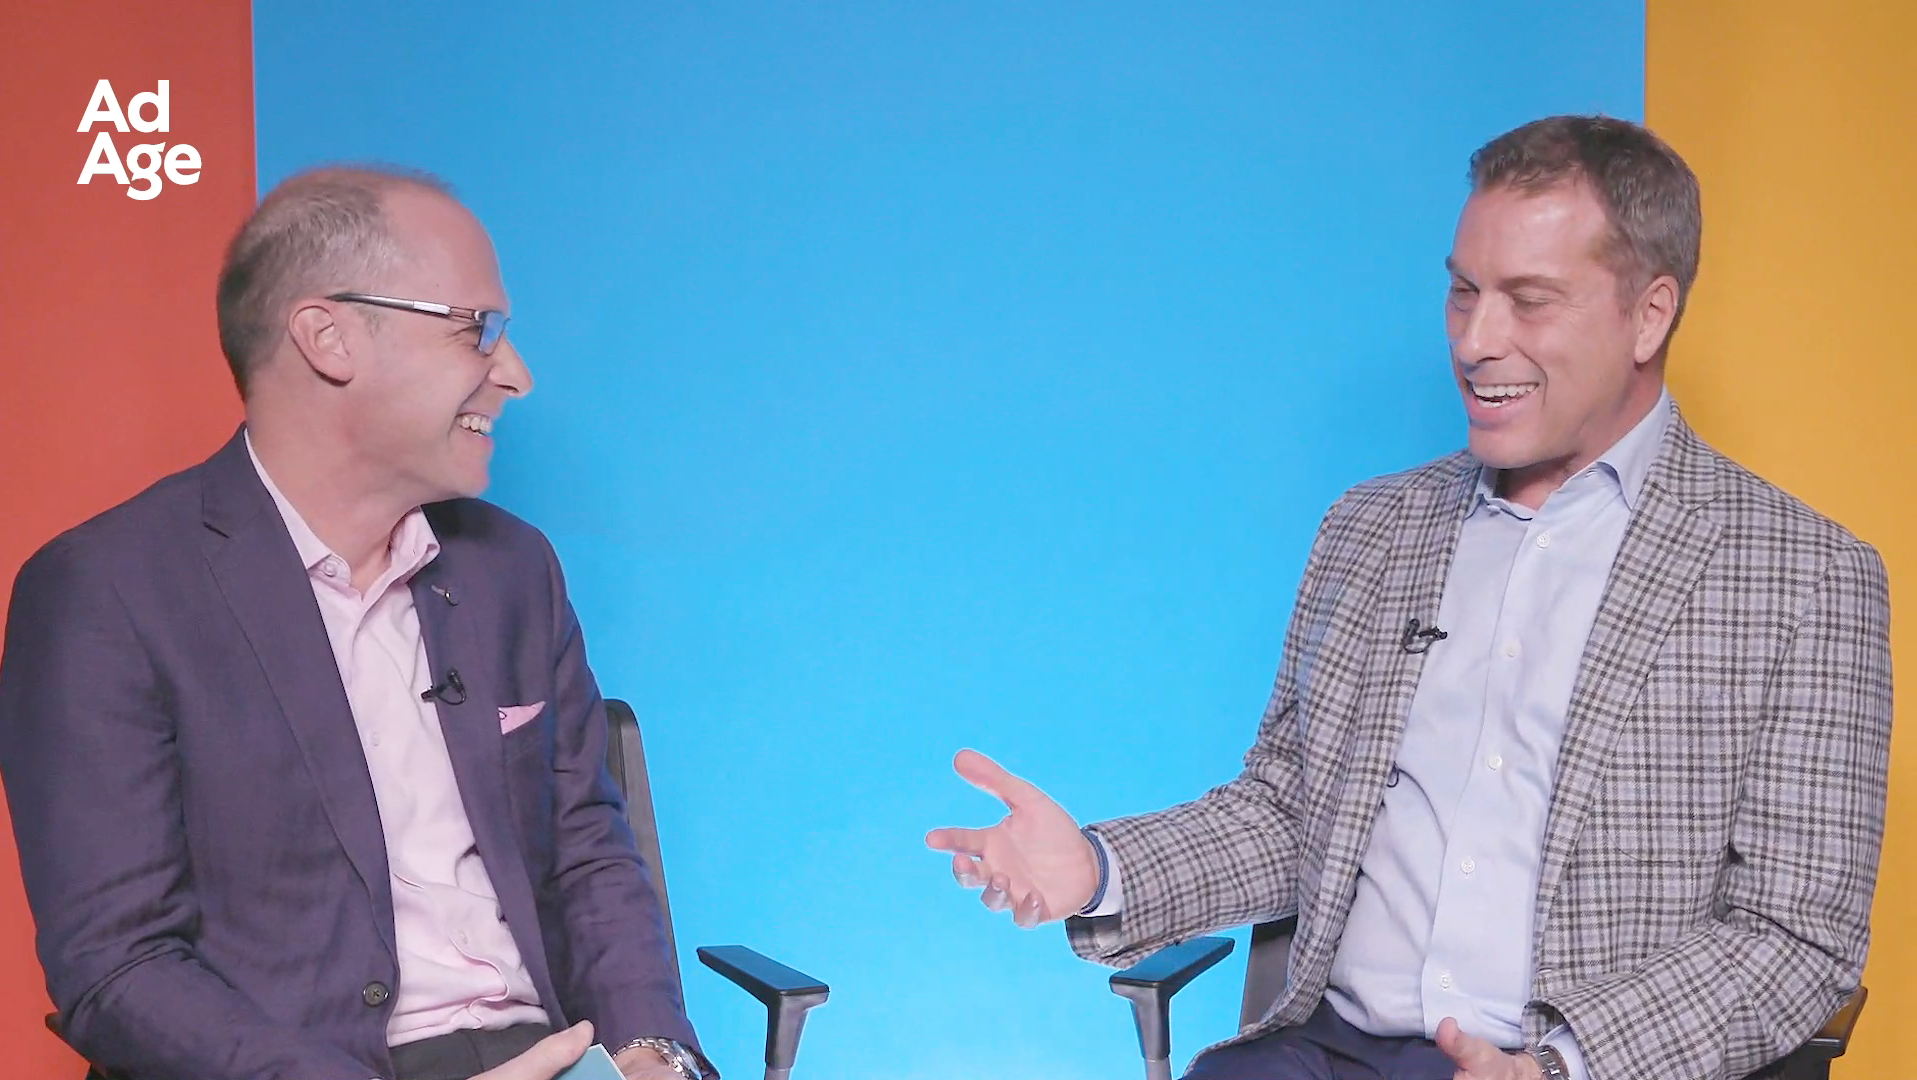 Blue Chip's Stanton Kawer on 'making what matters' and why data is everything